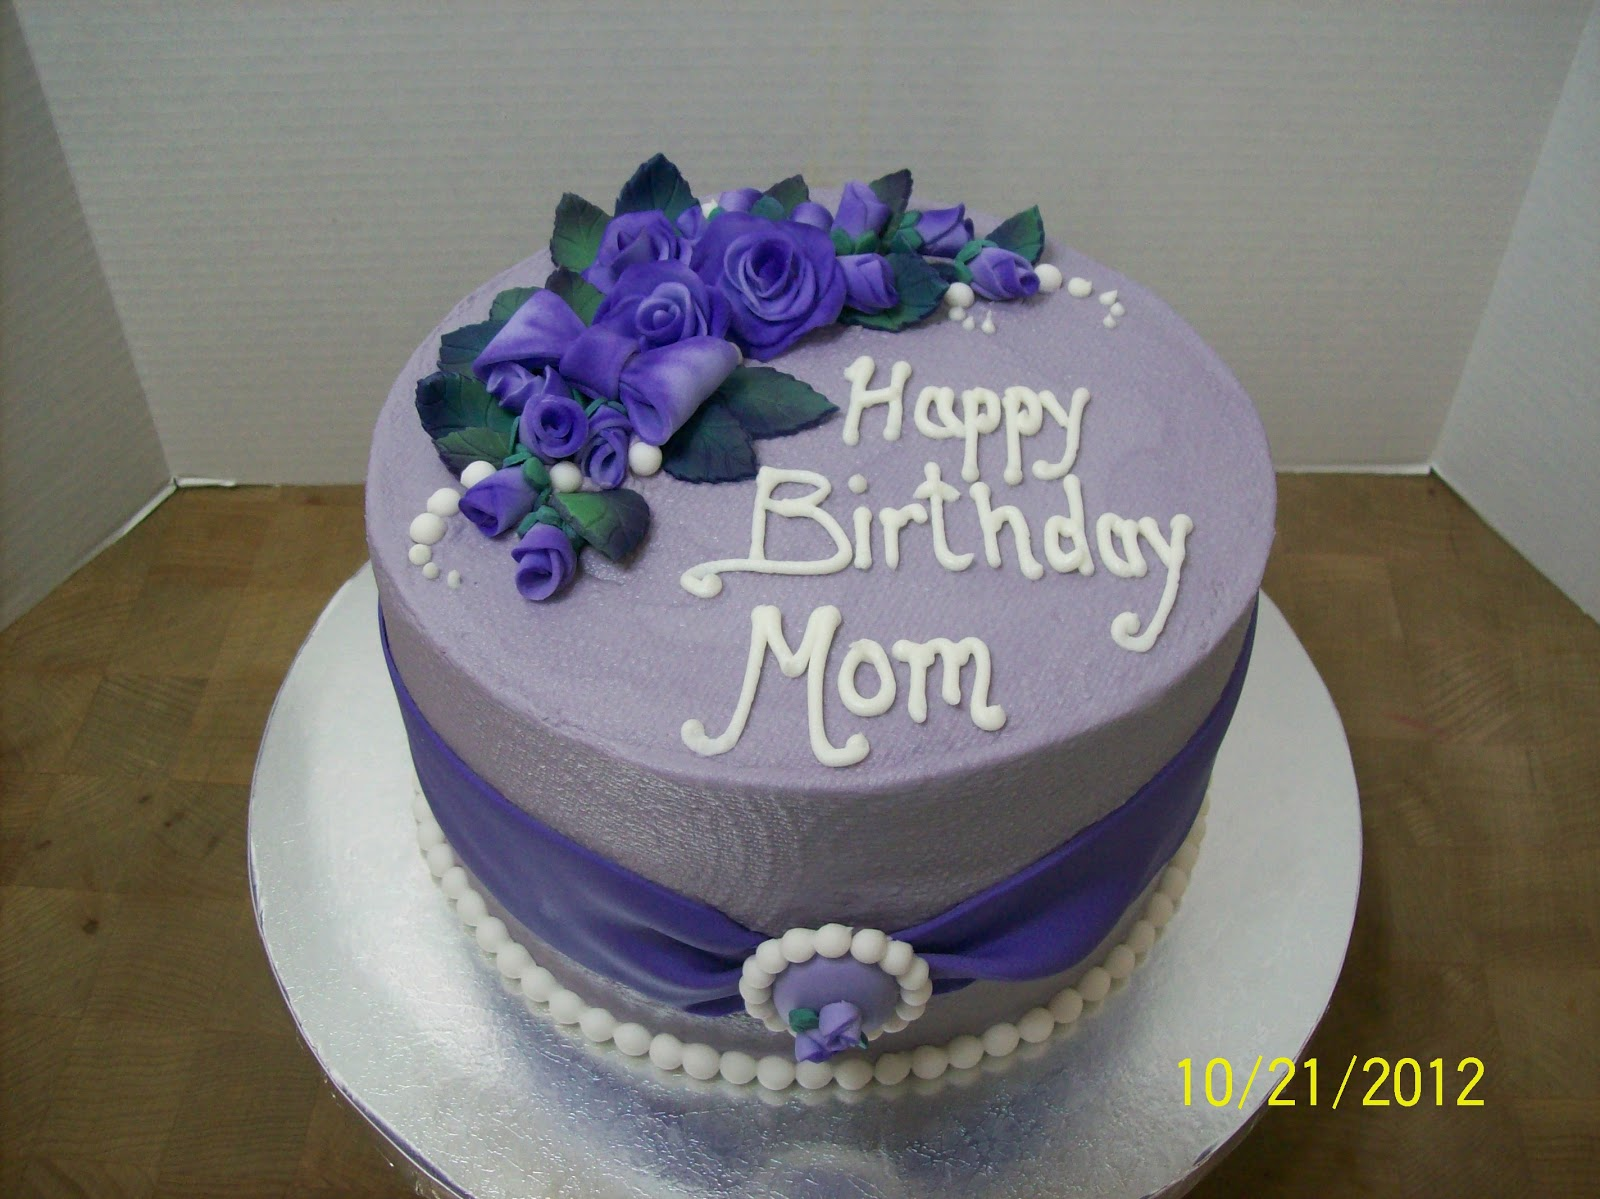 Cake Design For Moms : Image Gallery october birthday cakes mom